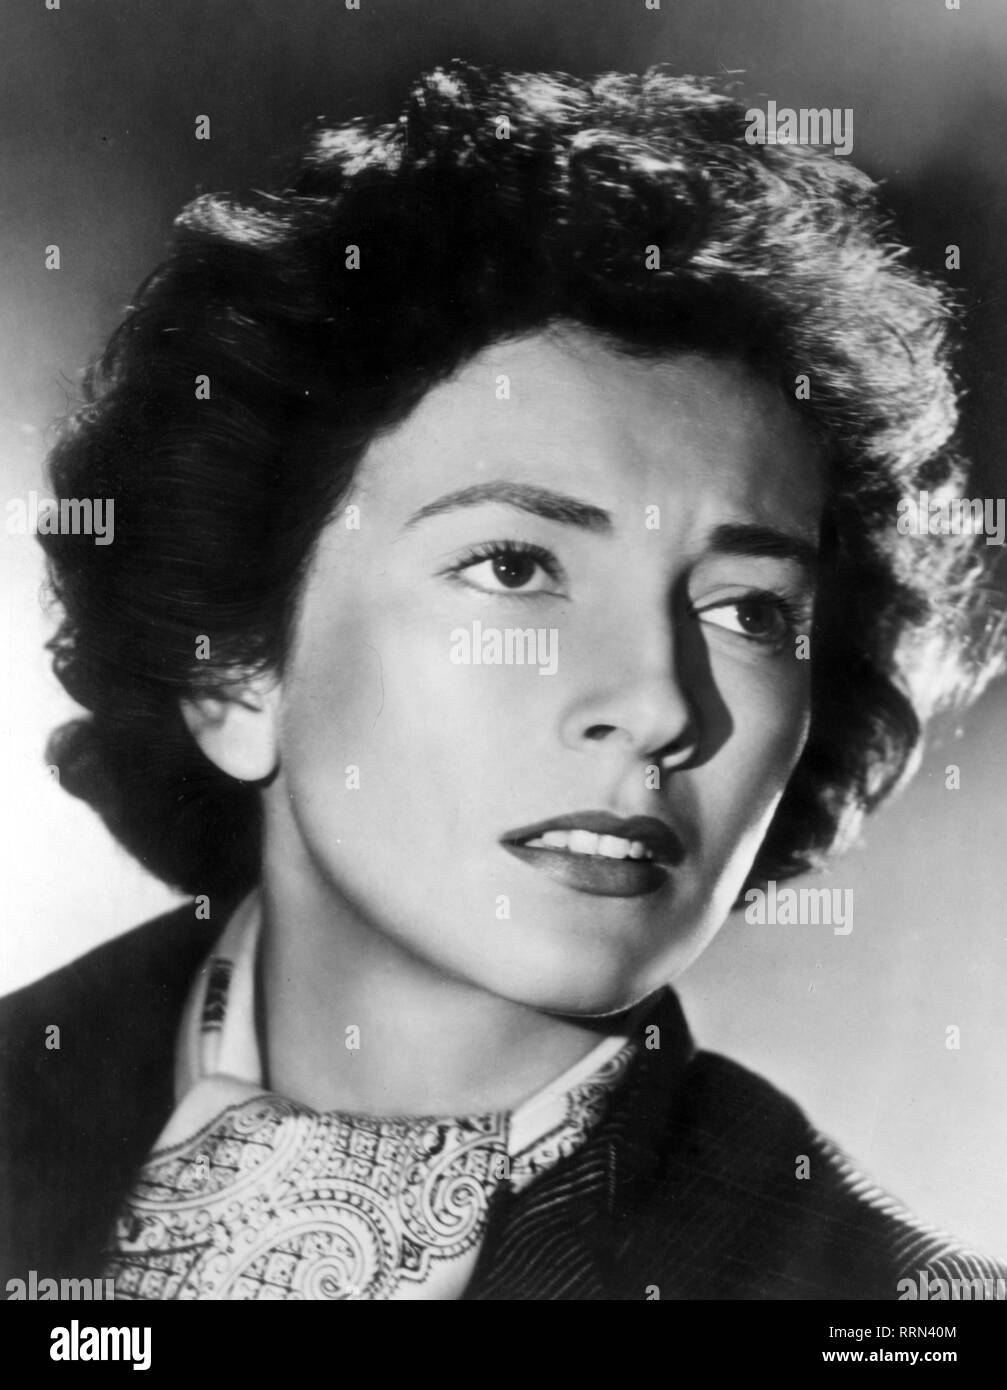 Valentina Cortese (born 1923) Valentina Cortese (born 1923) new pictures